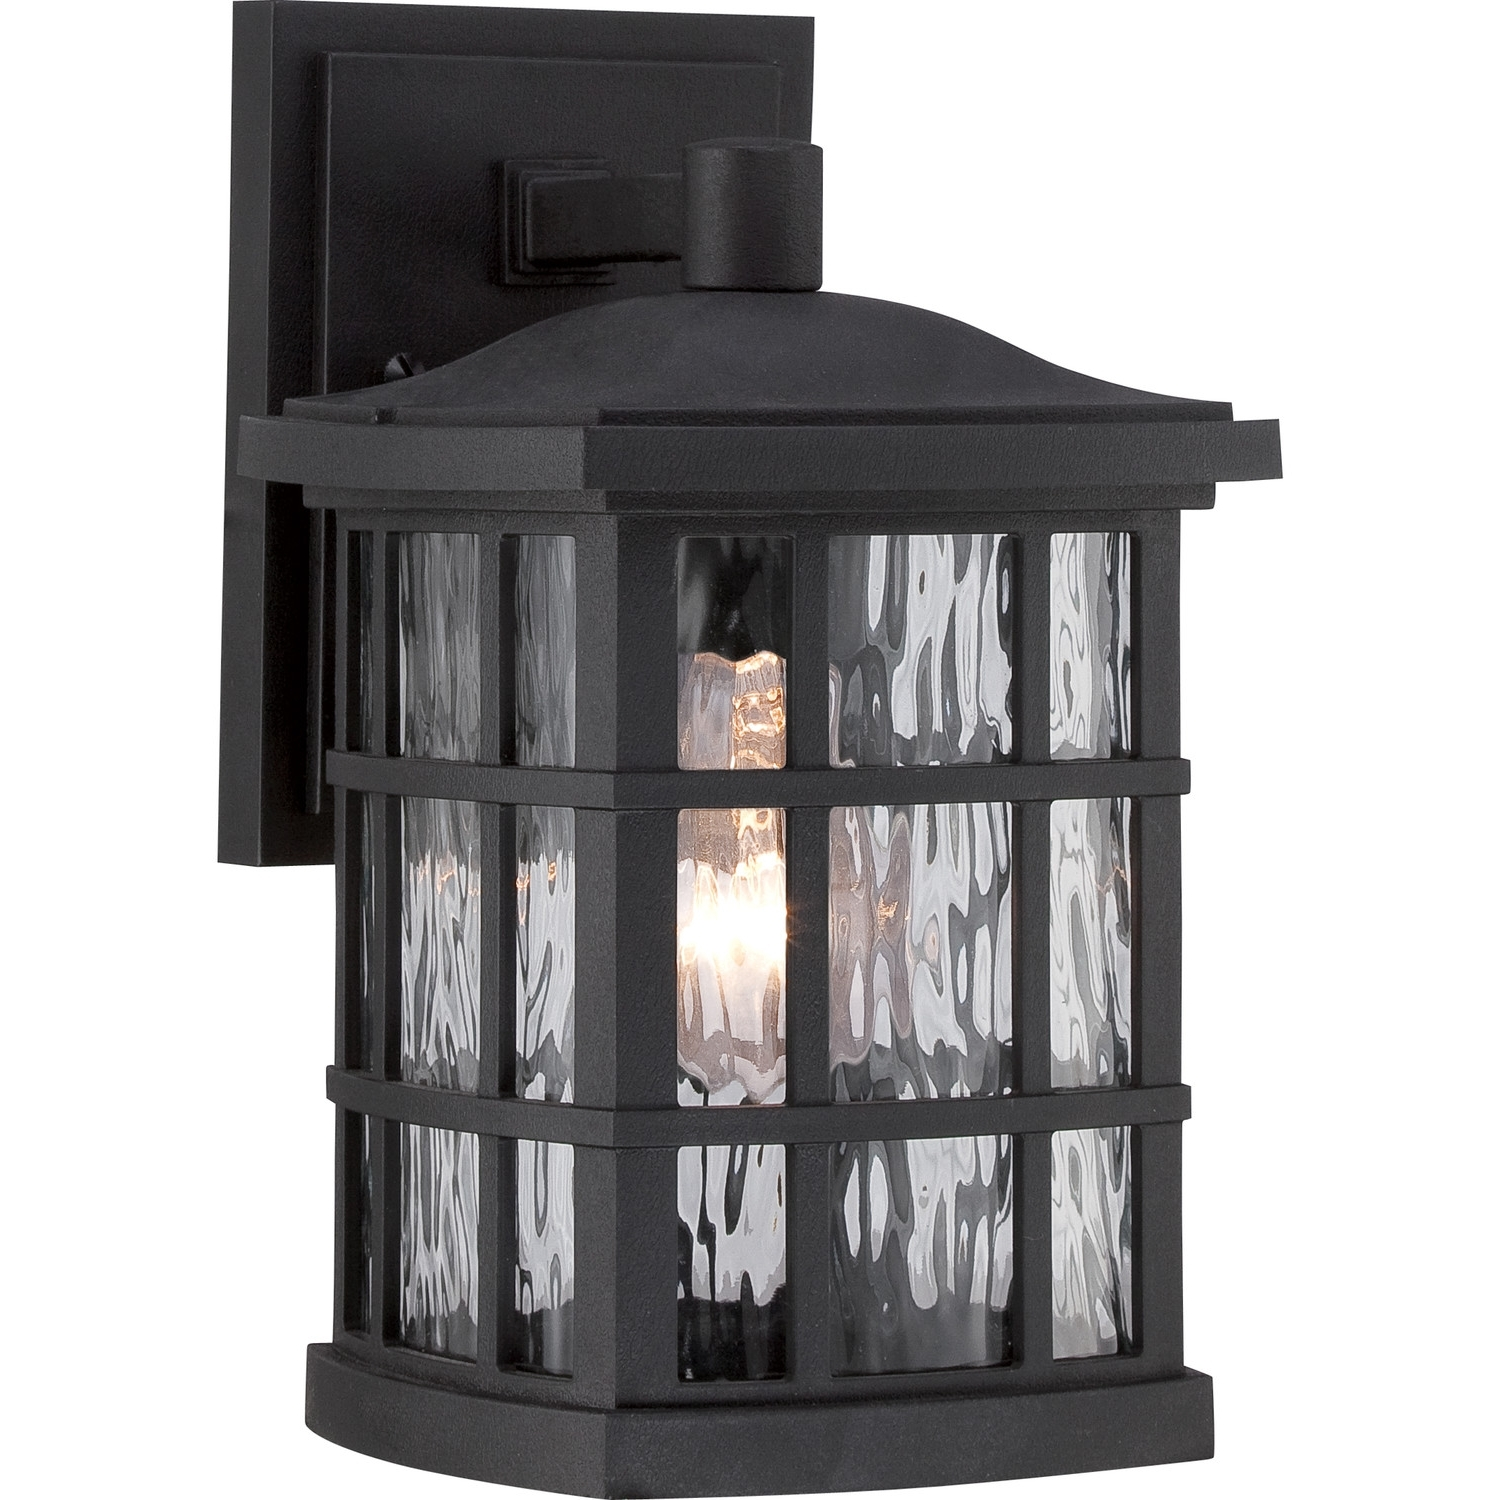 2018 Outdoor Lighting Fixtures At Wayfair Within Furniture : Luxury Wayfair Outdoor Lighting Home Decoration Ideas (View 1 of 20)